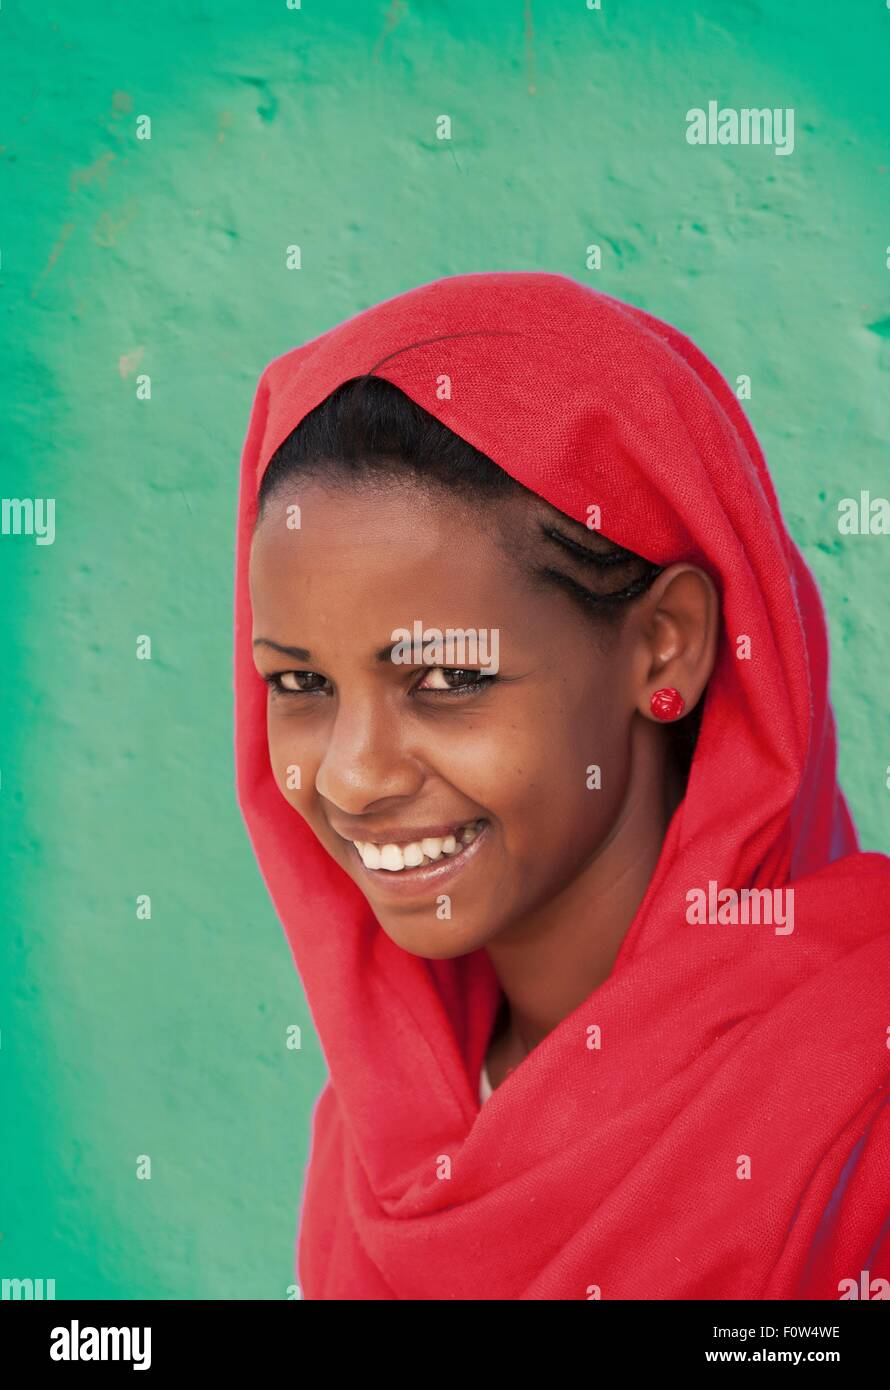 Portrait of Amhara woman wearing red headscarf, Ethiopia, Africa - Stock Image